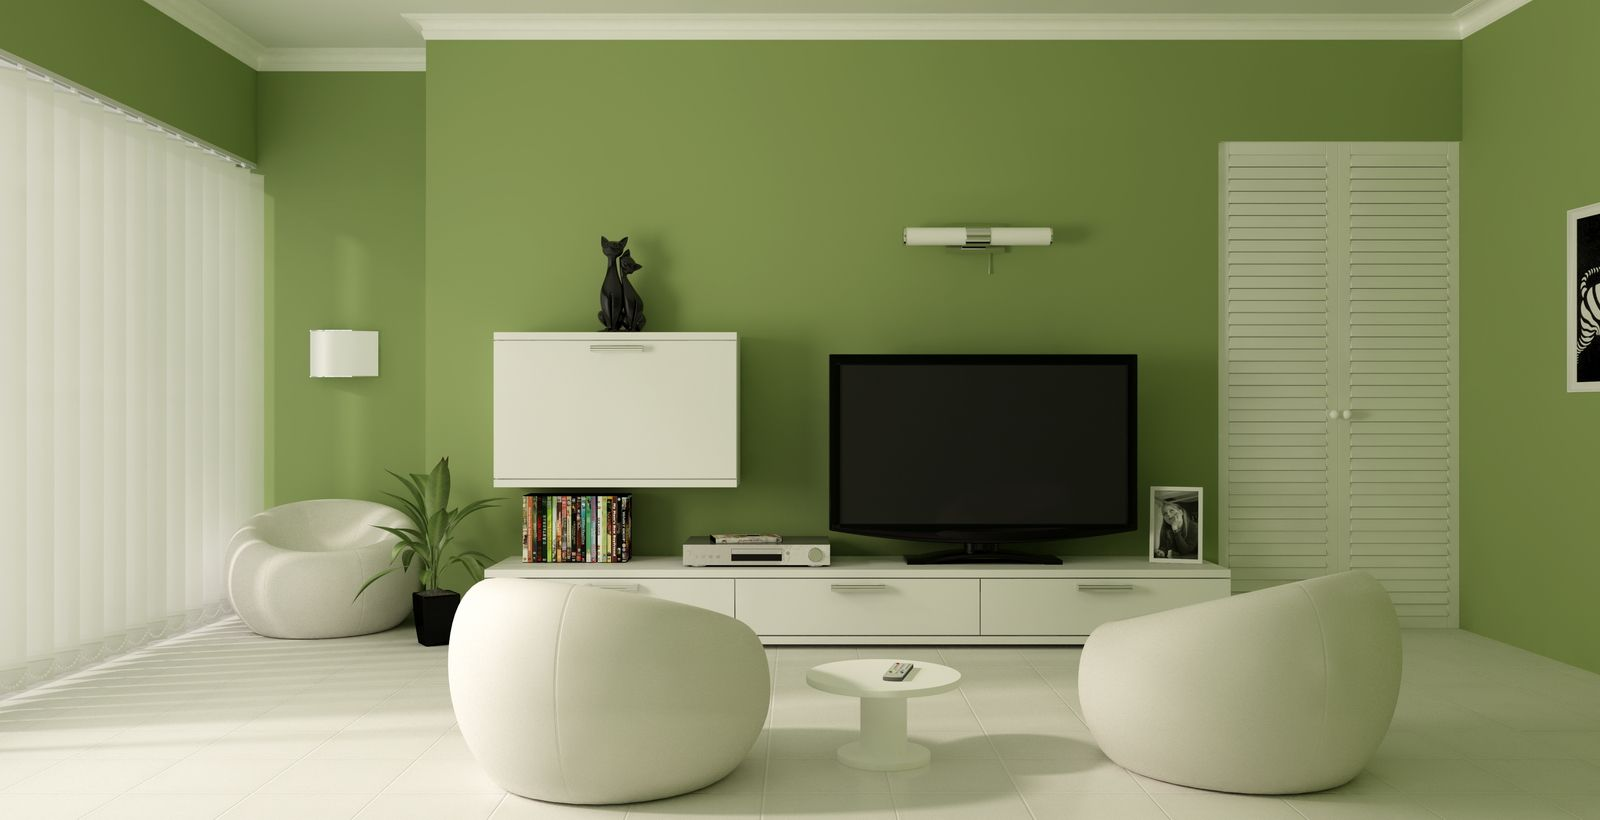 Interior Design Living Room Color paint colors ideas for living room | green paint colors, living